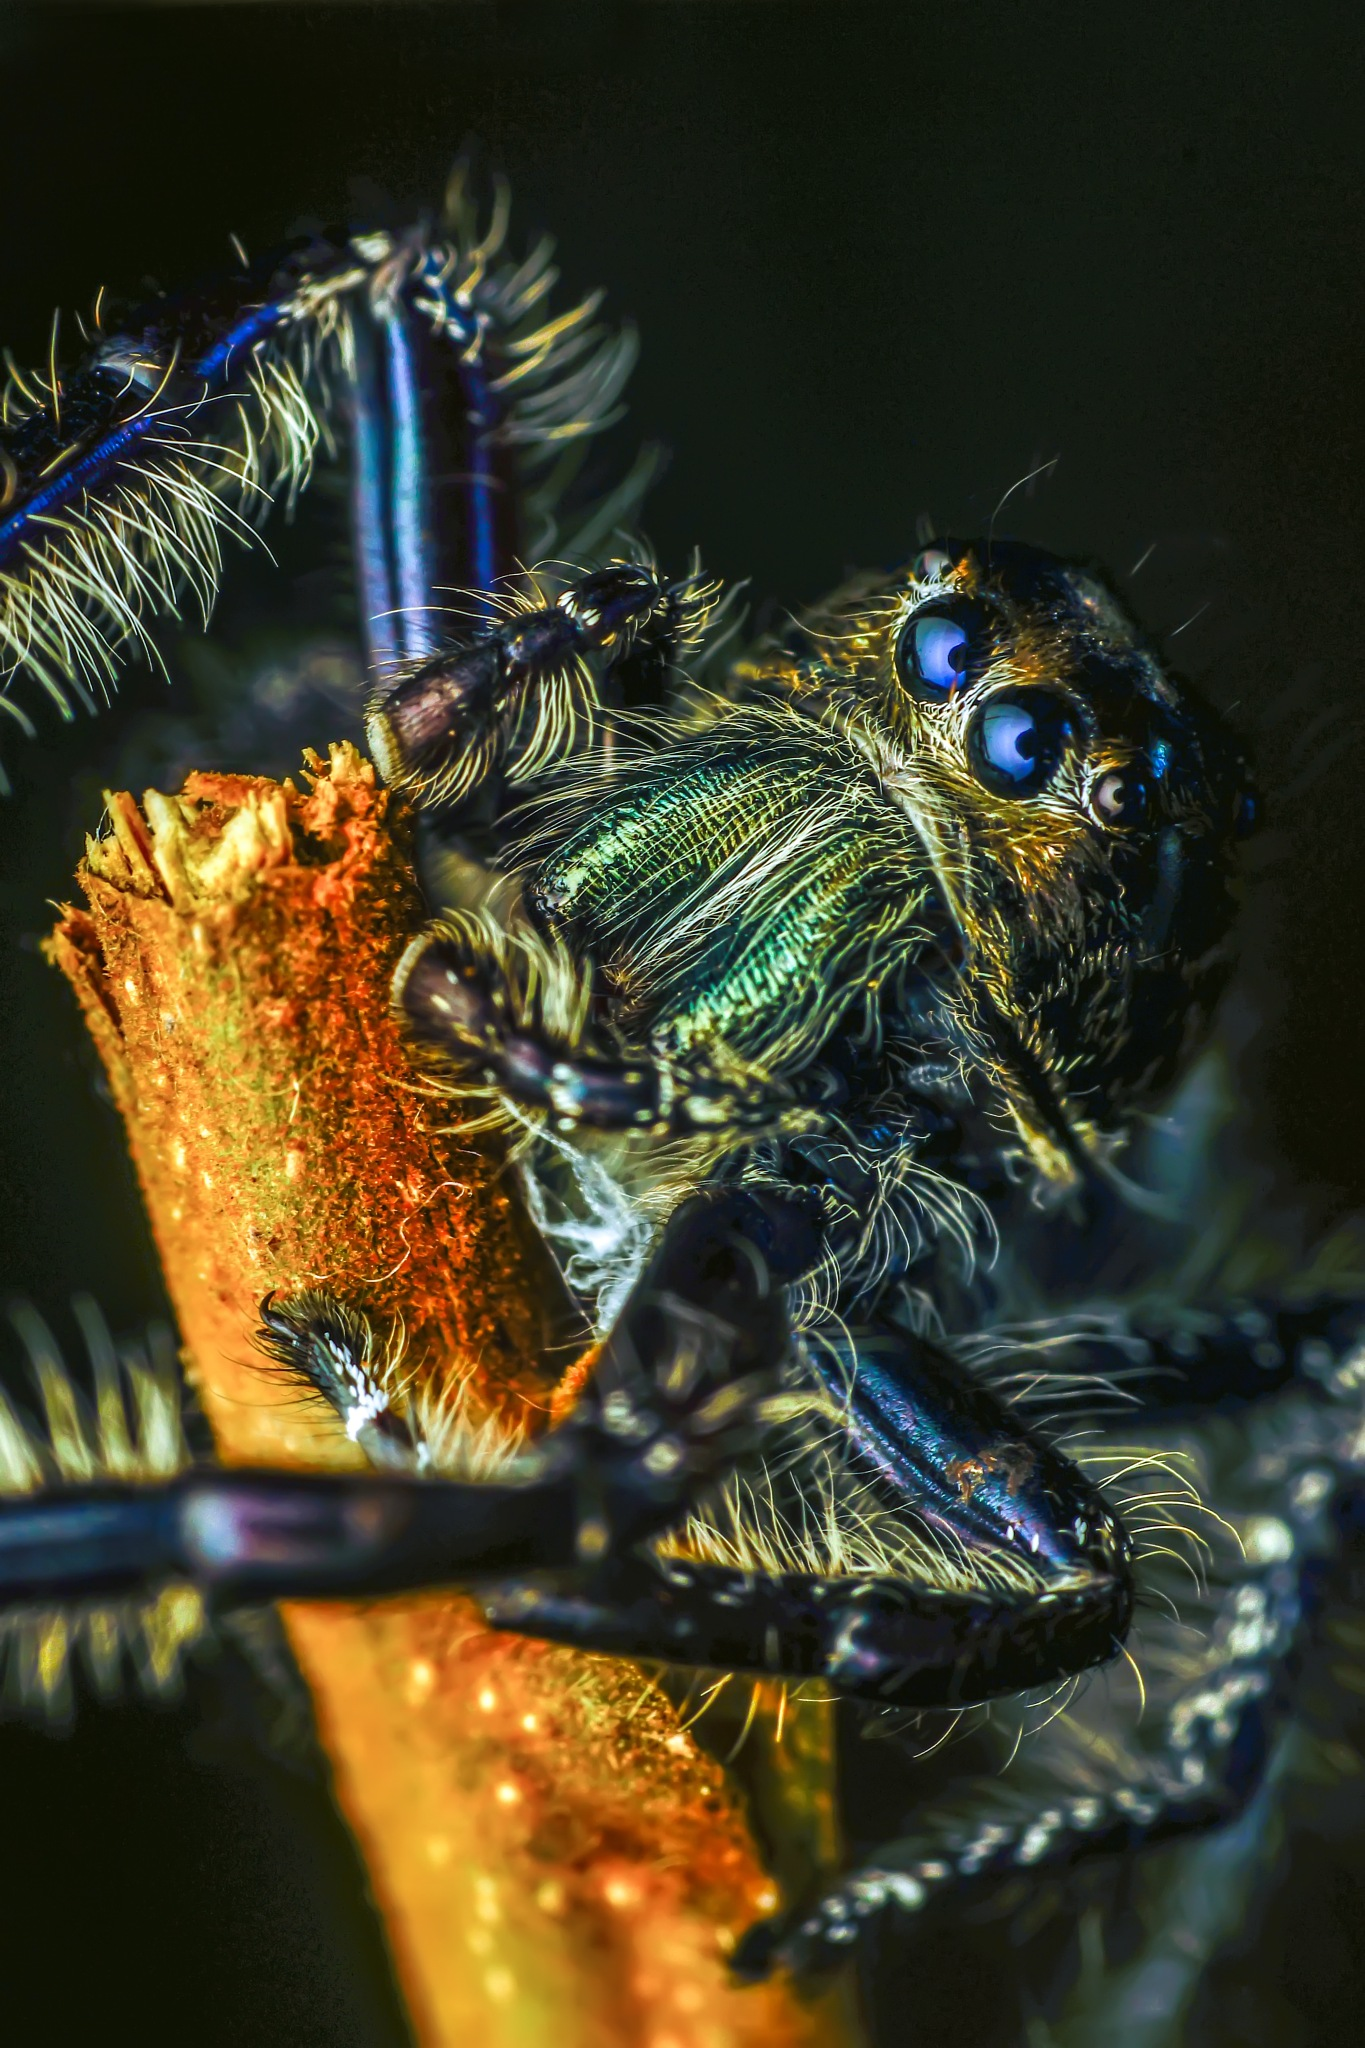 jumping spider by hury